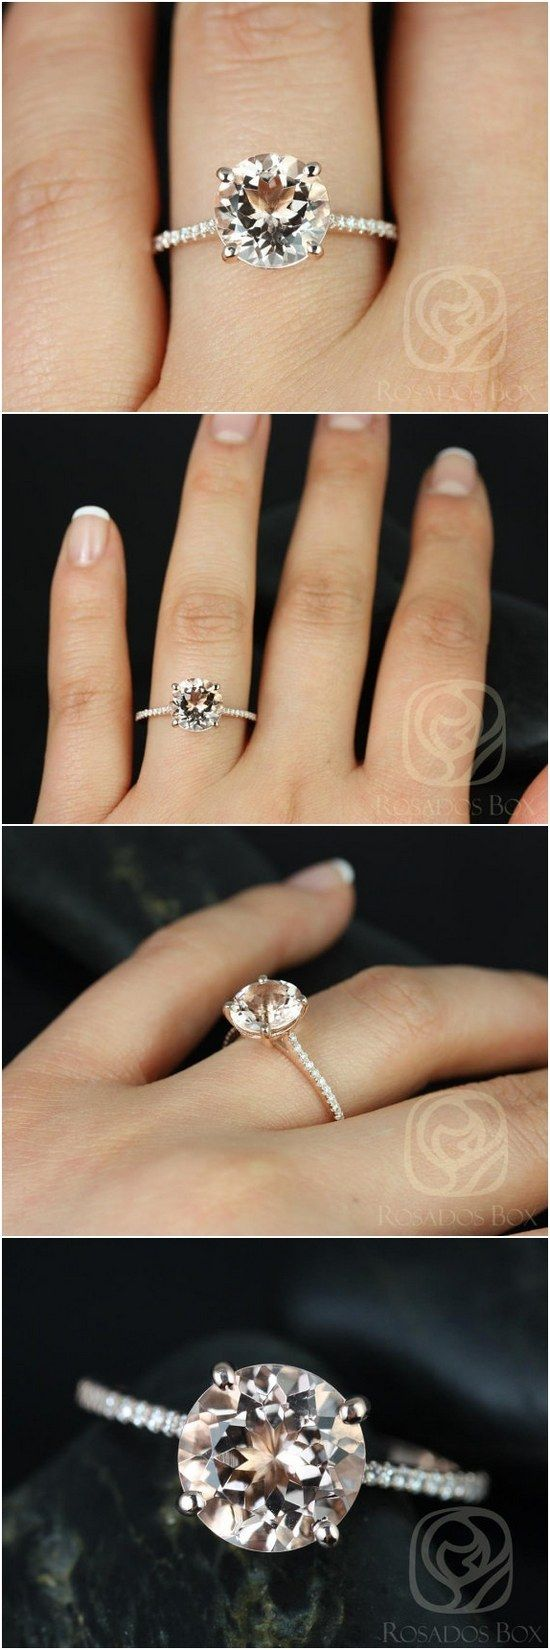 size engagement diamond cheap white cost under sets low of hers wedding gold unique bridal rings buy full walmart and ring his